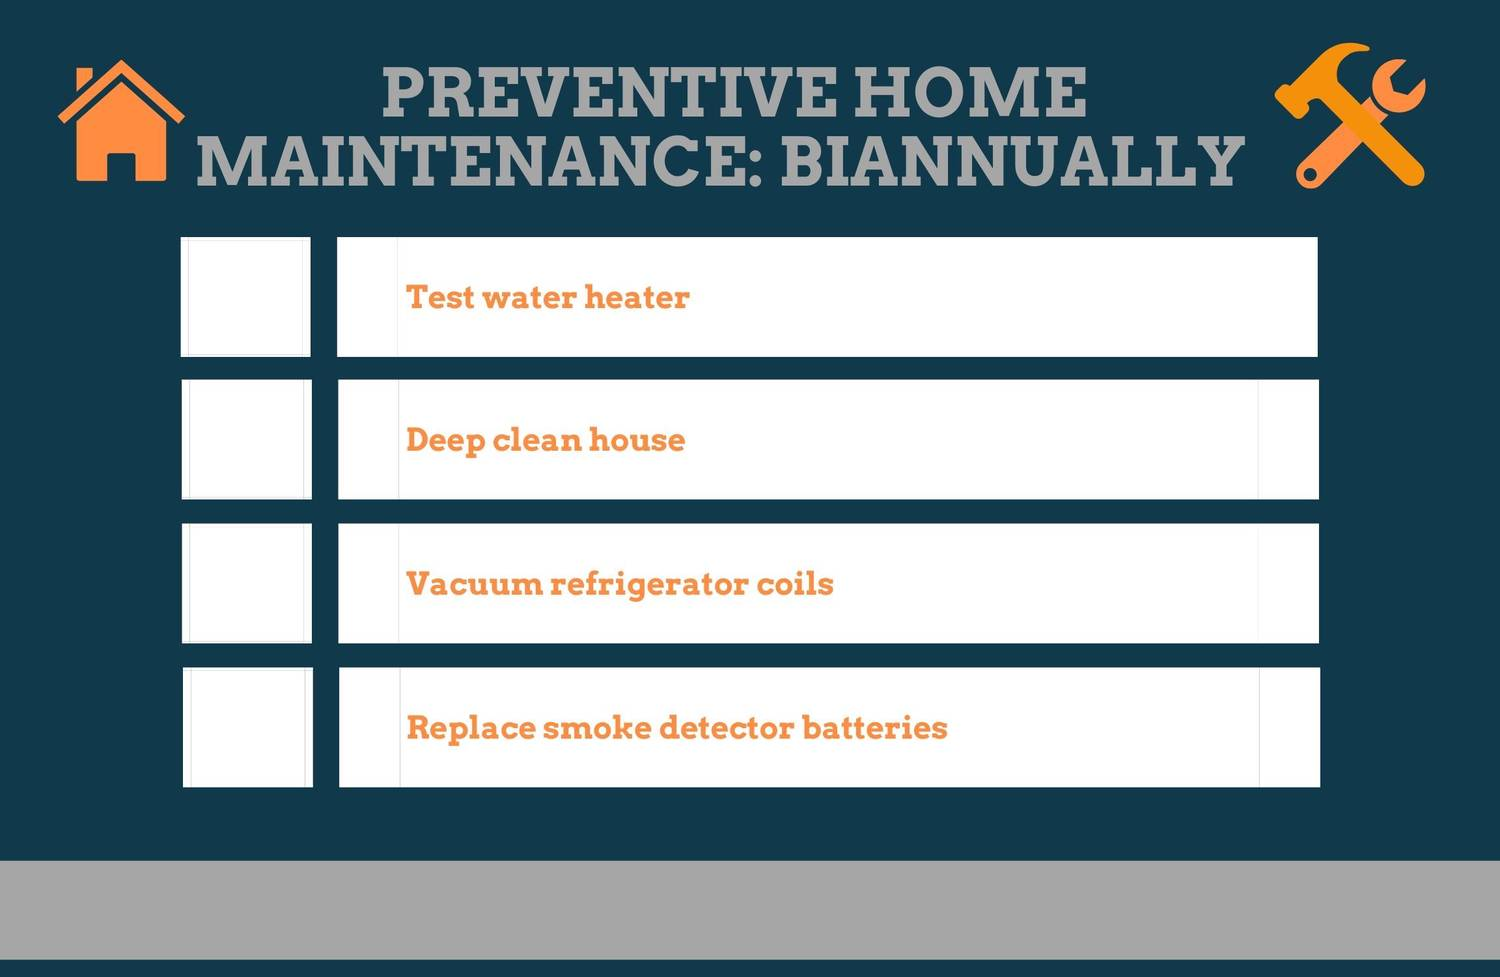 Biannual Preventive Home Maintenance